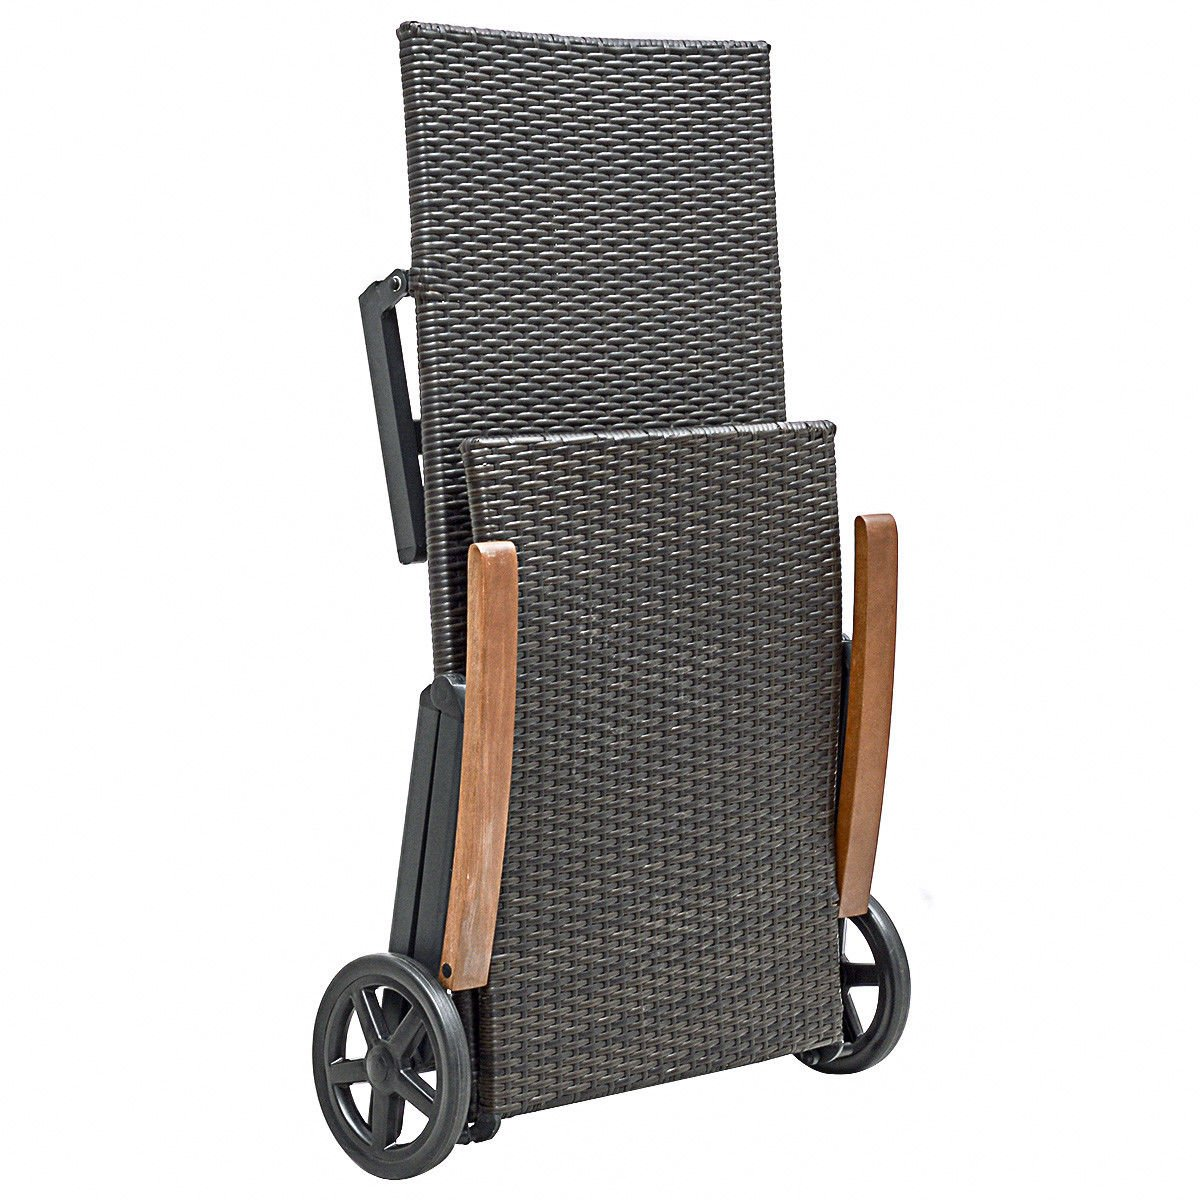 Movement Recliner Adjustable Position Construction